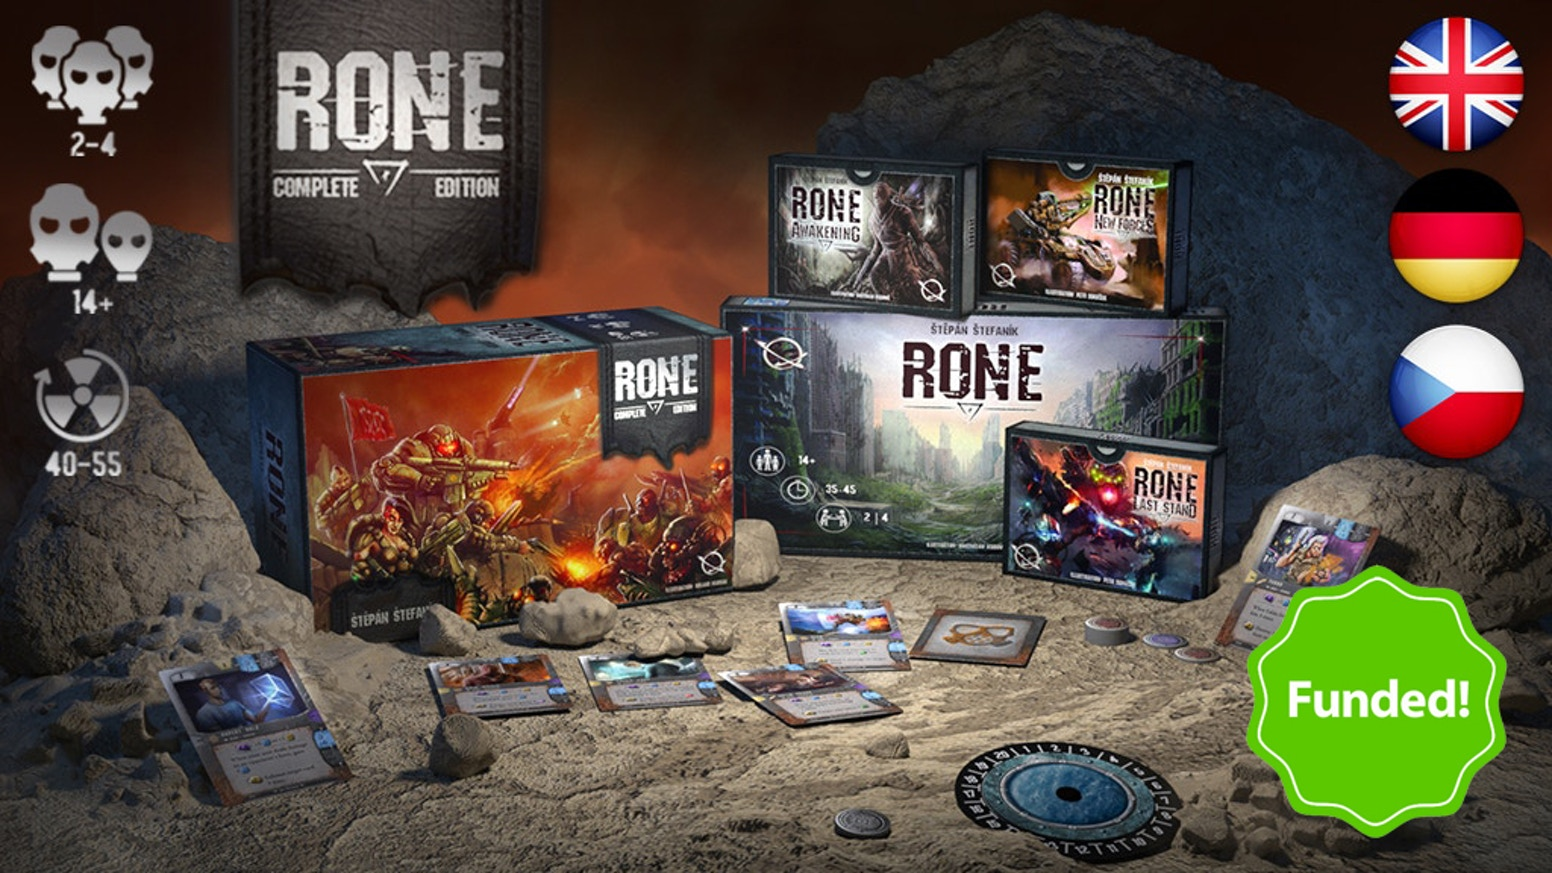 RONE: Complete edition is a strategic post-apocalyptic card game for 2 to 4 players that contains the Core Set and all expansions.